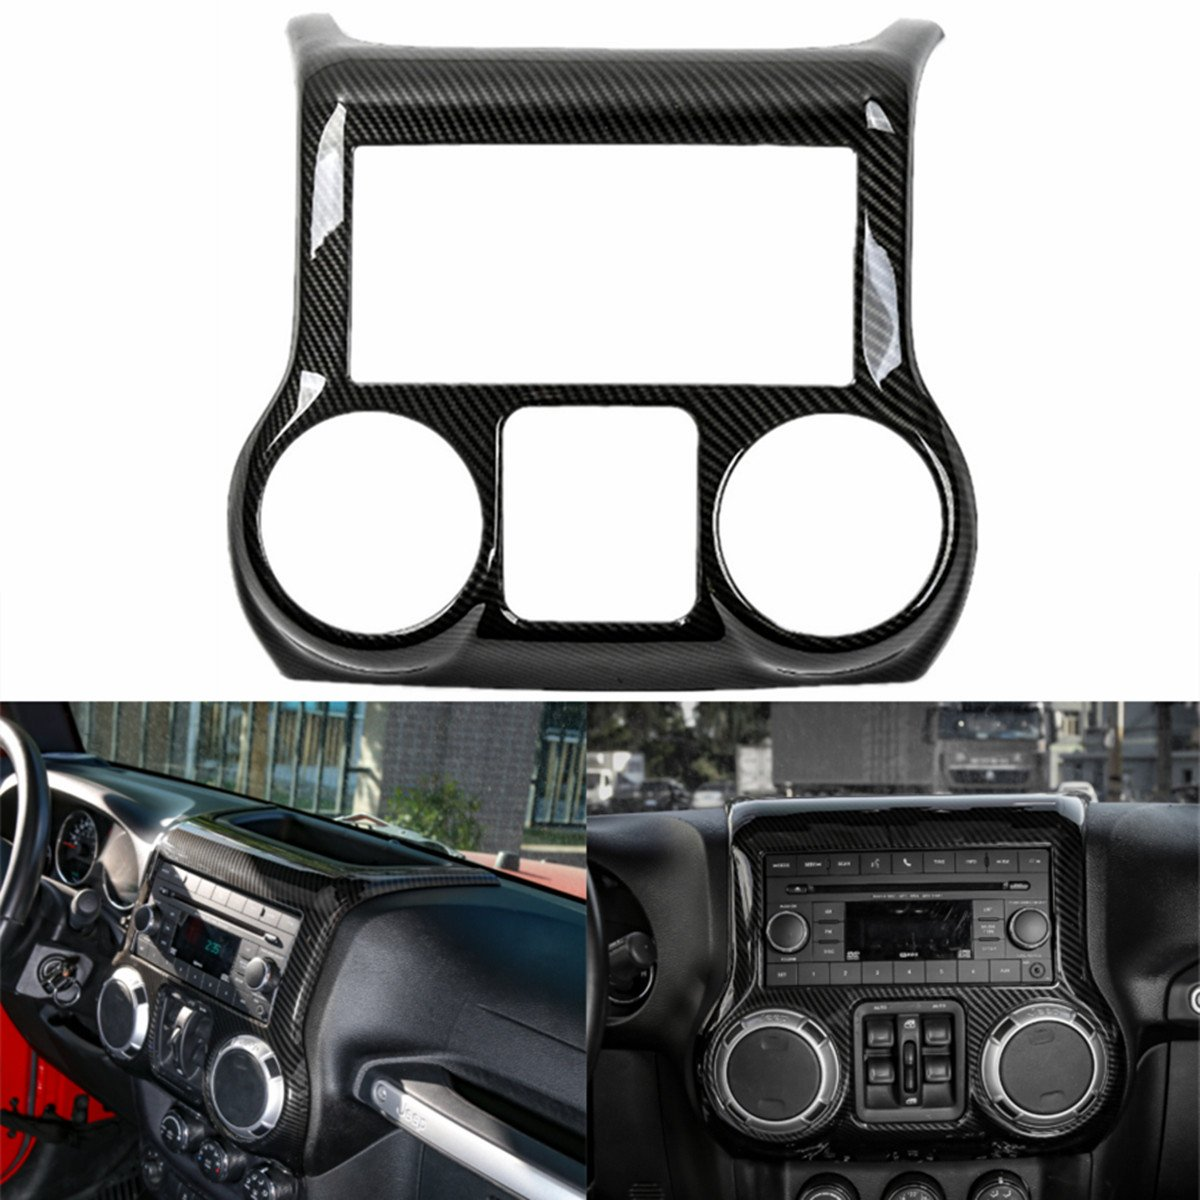 YOCTM Black Carbon Fiber Car Interior Center Control Panel Cover Trim ABS Frame Decoration Car Styling Fit for Jeep Wrangler 2011-2017 (Black)